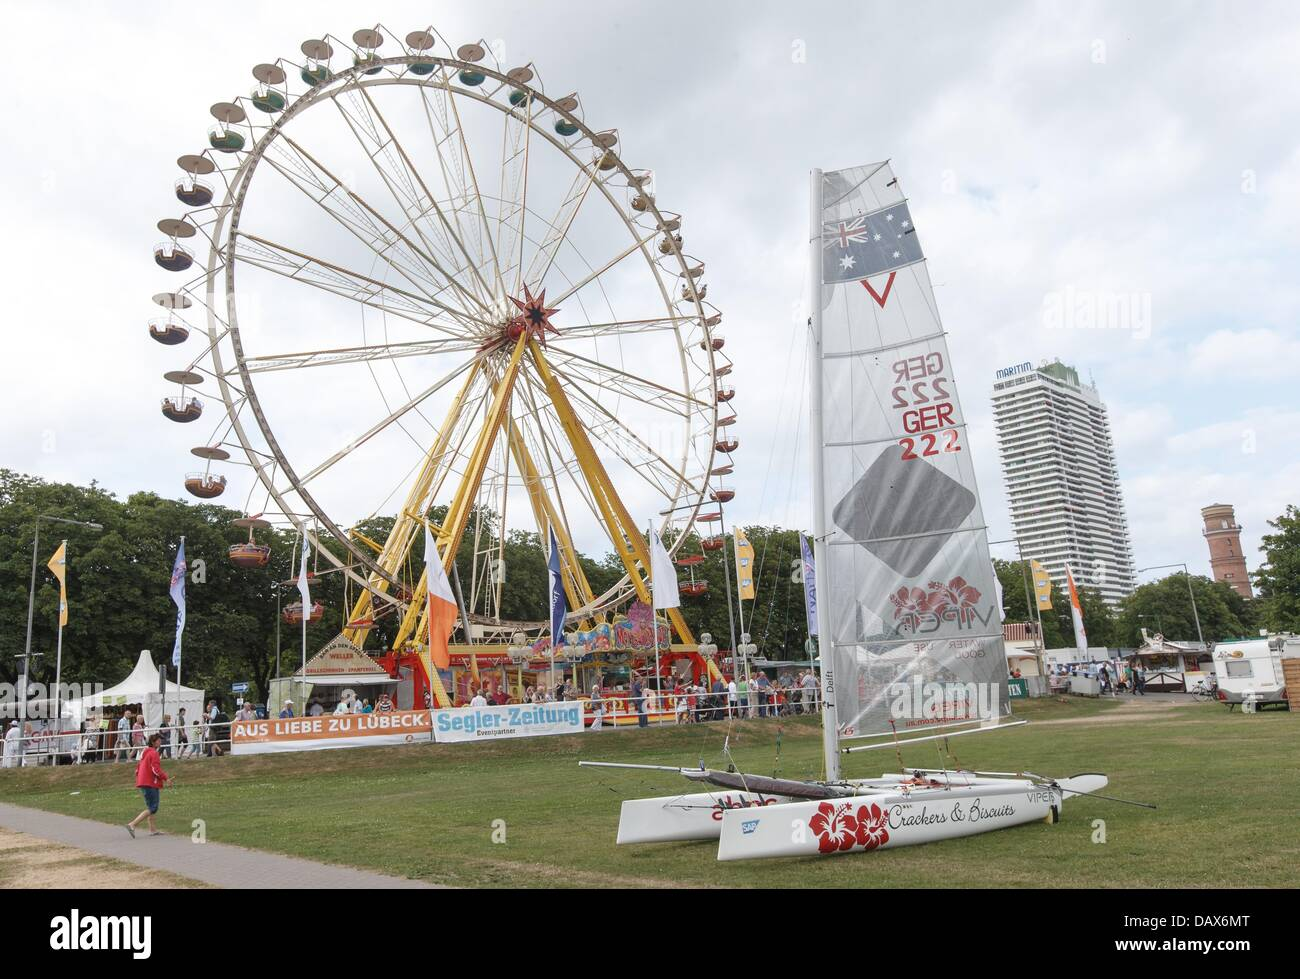 A giant wheel rotates at the opening of the 124th Travemuende Week in Travemuende, Germany, 19 July 2013. The festival - Stock Image